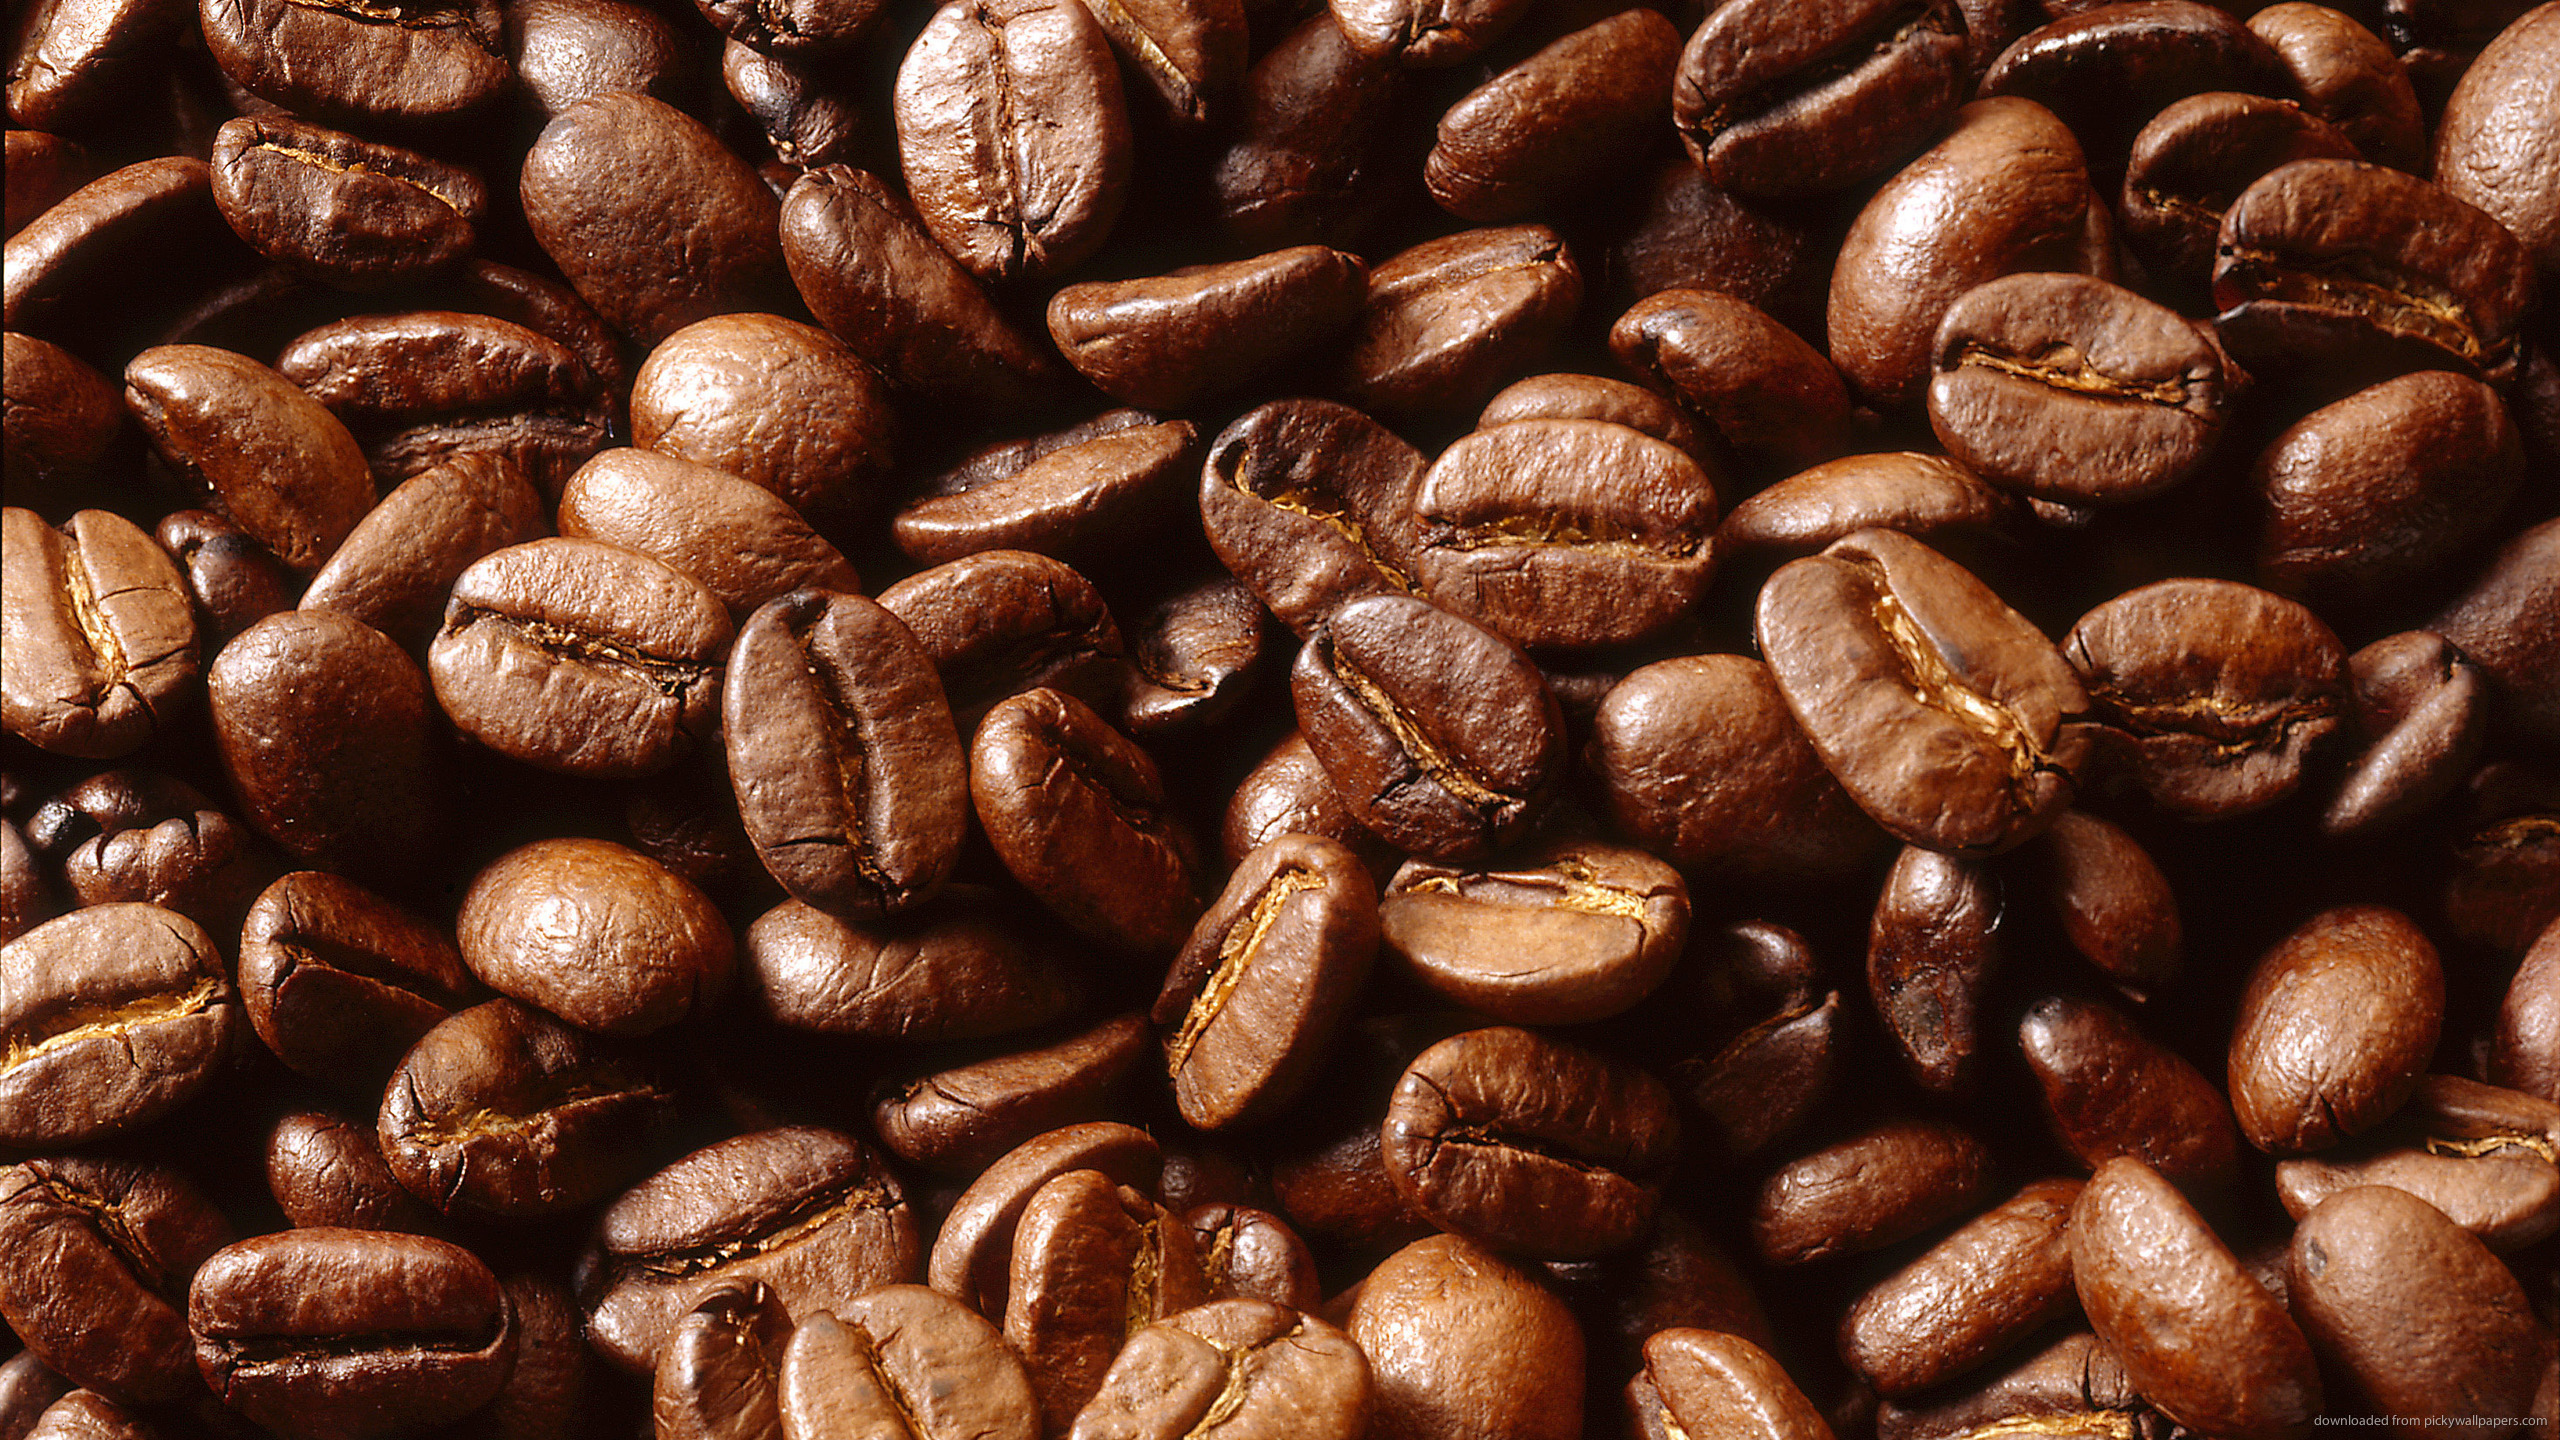 Coffee Beans wallpaper | 2560x1440 | #66896